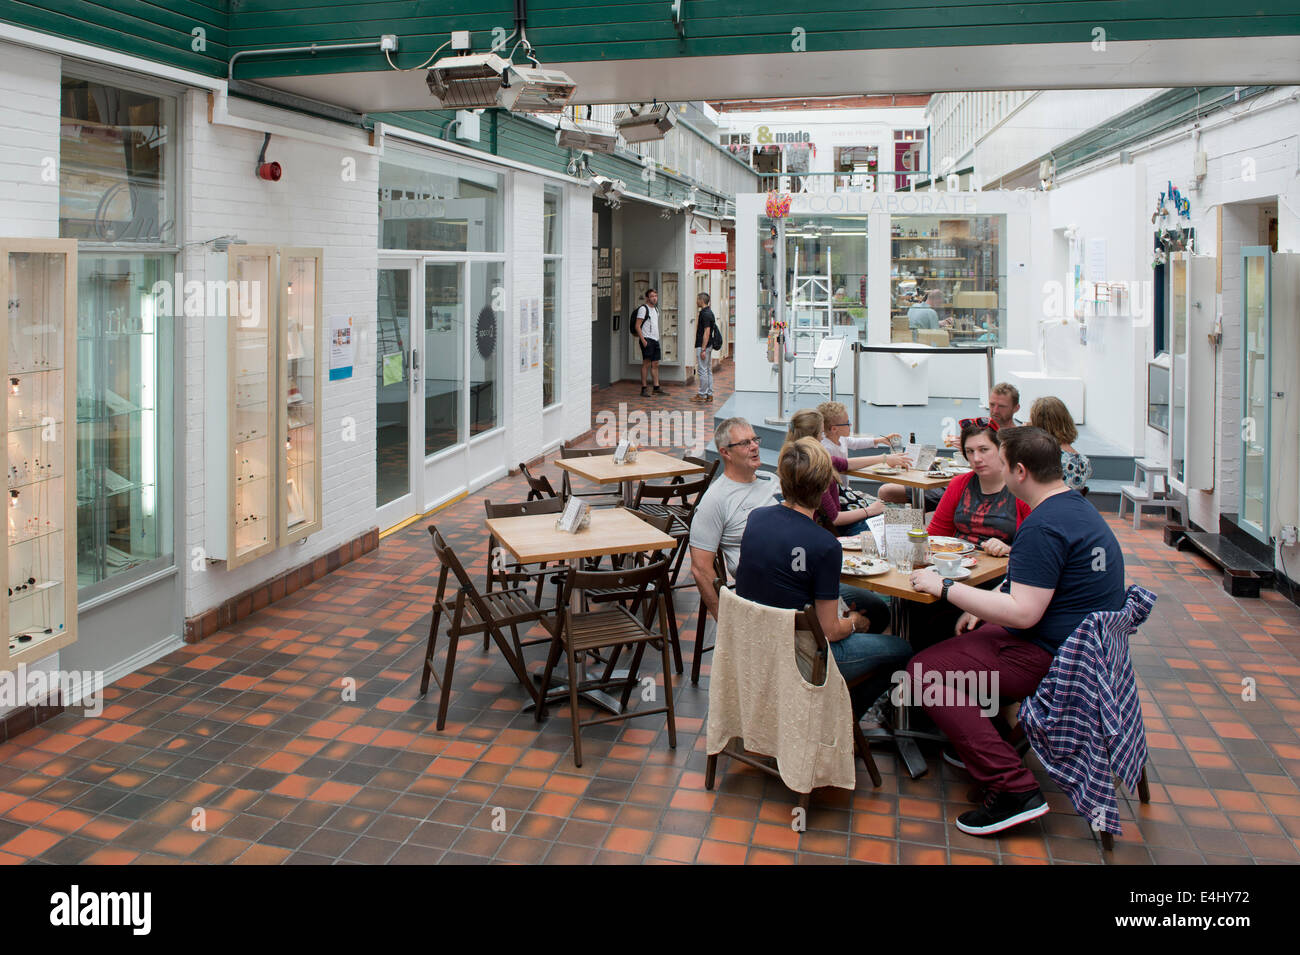 People socialise inside the Manchester Craft and Design Centre on Oak Street in the Northern Quarter, Manchester - Stock Image